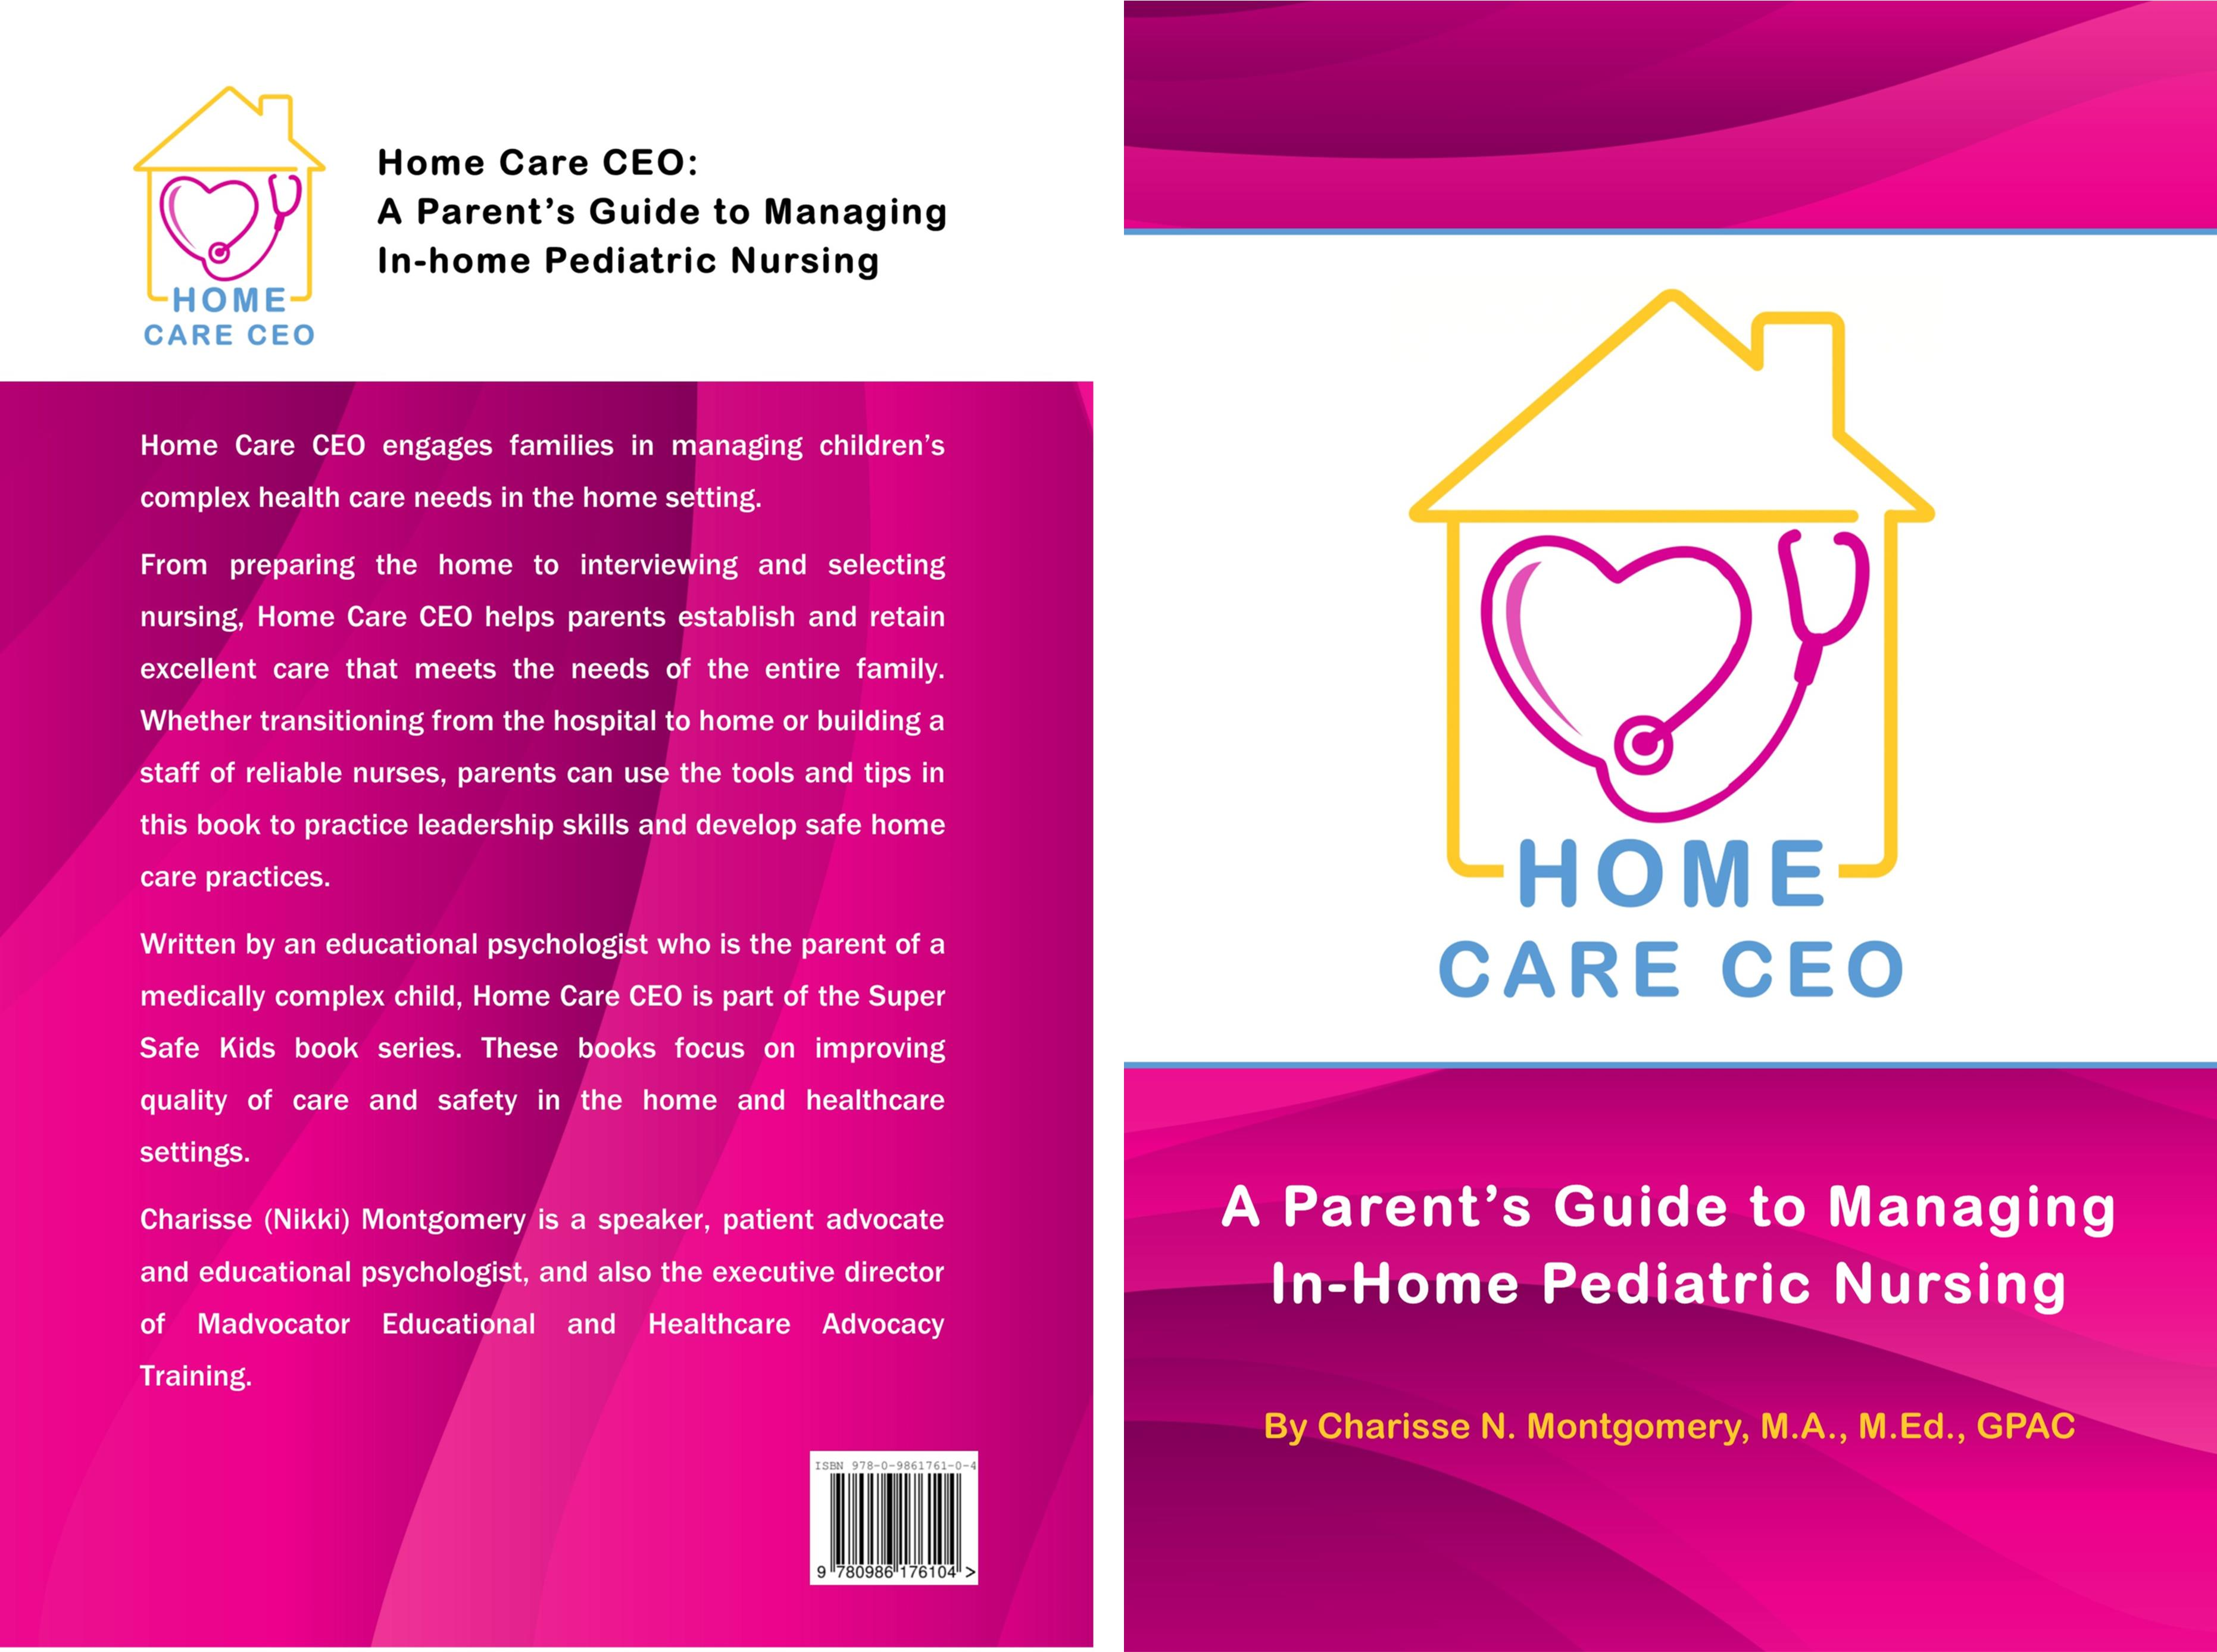 home care ceo a parent u0027s guide to managing in home pediatric